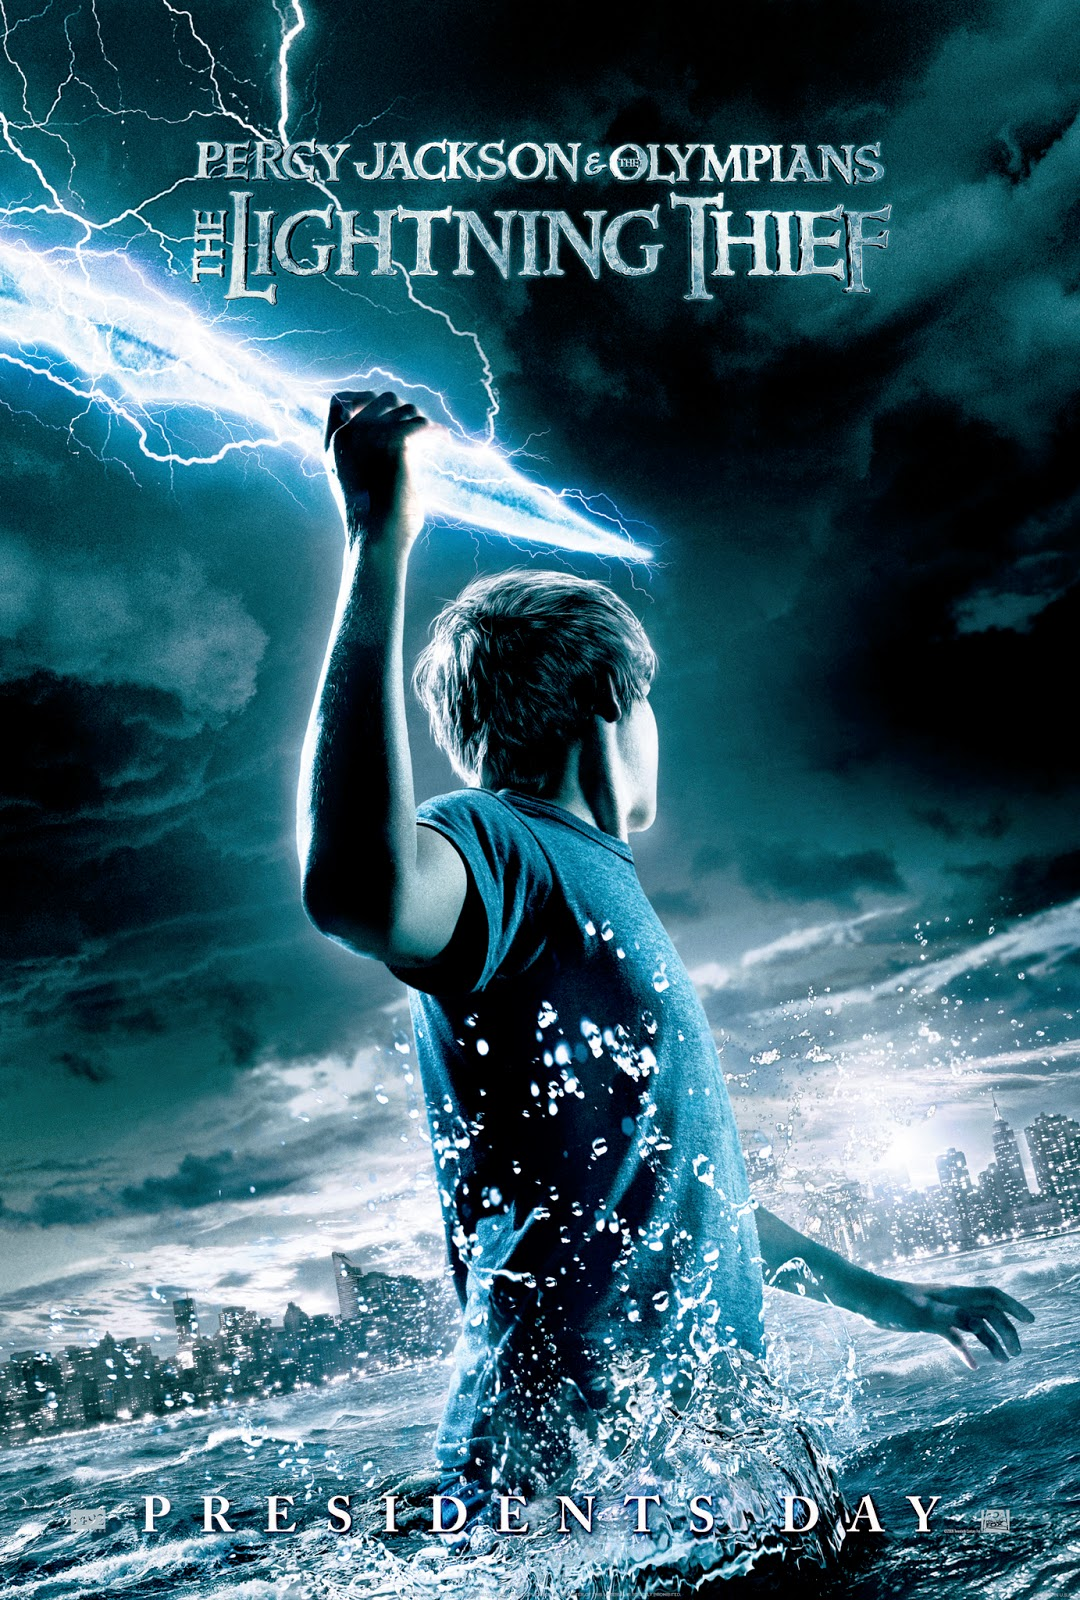 Percy Jackson & the Olympians: The Lightning Thief 2010